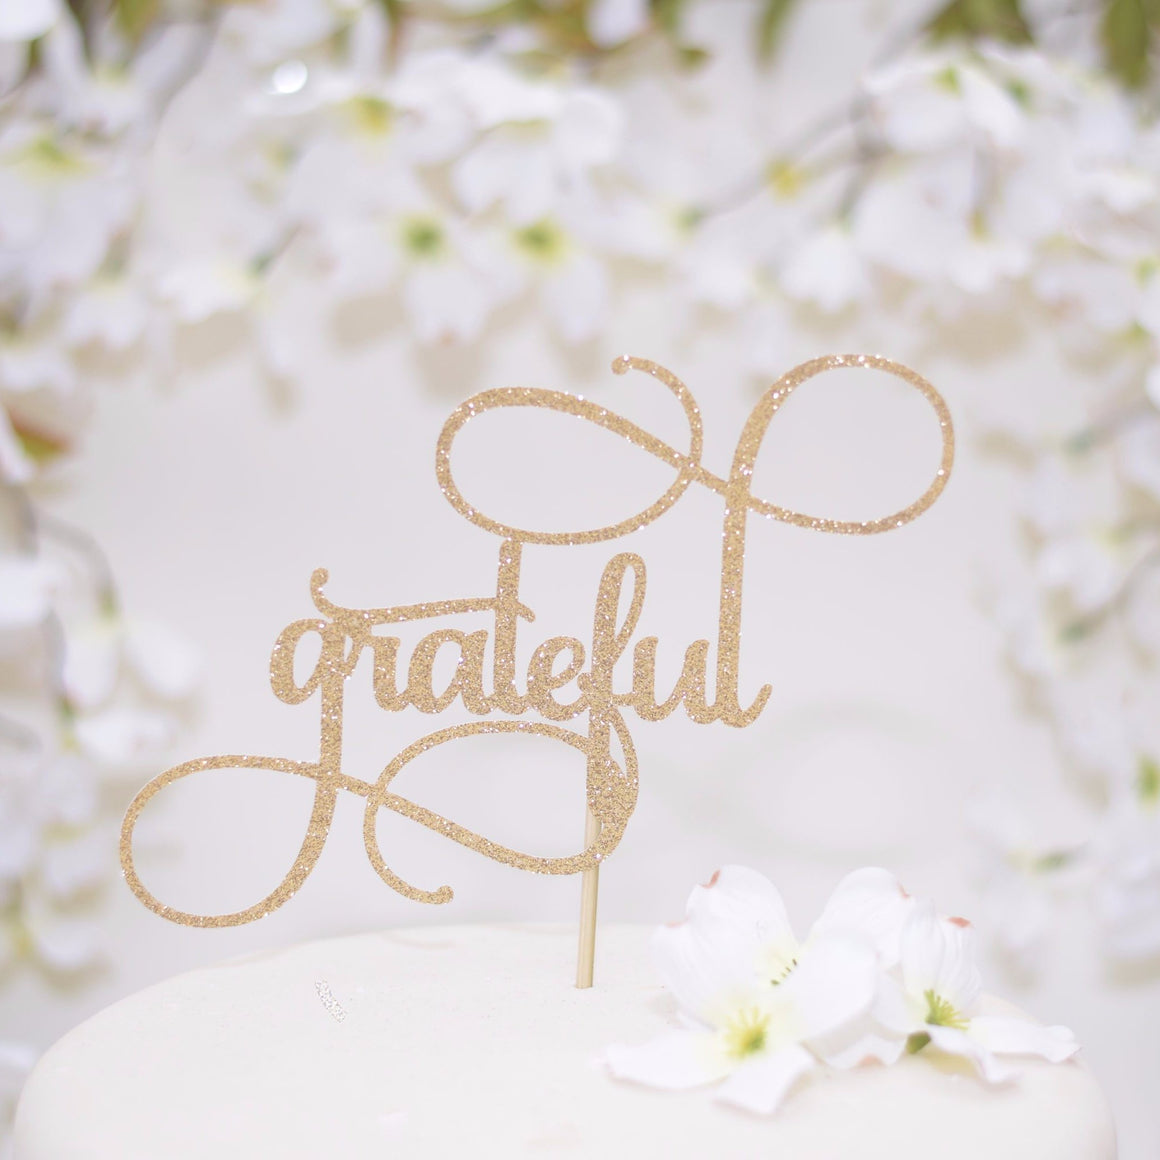 grateful gold sparkle glitter cake topper on elegant white wedding cake with floral background